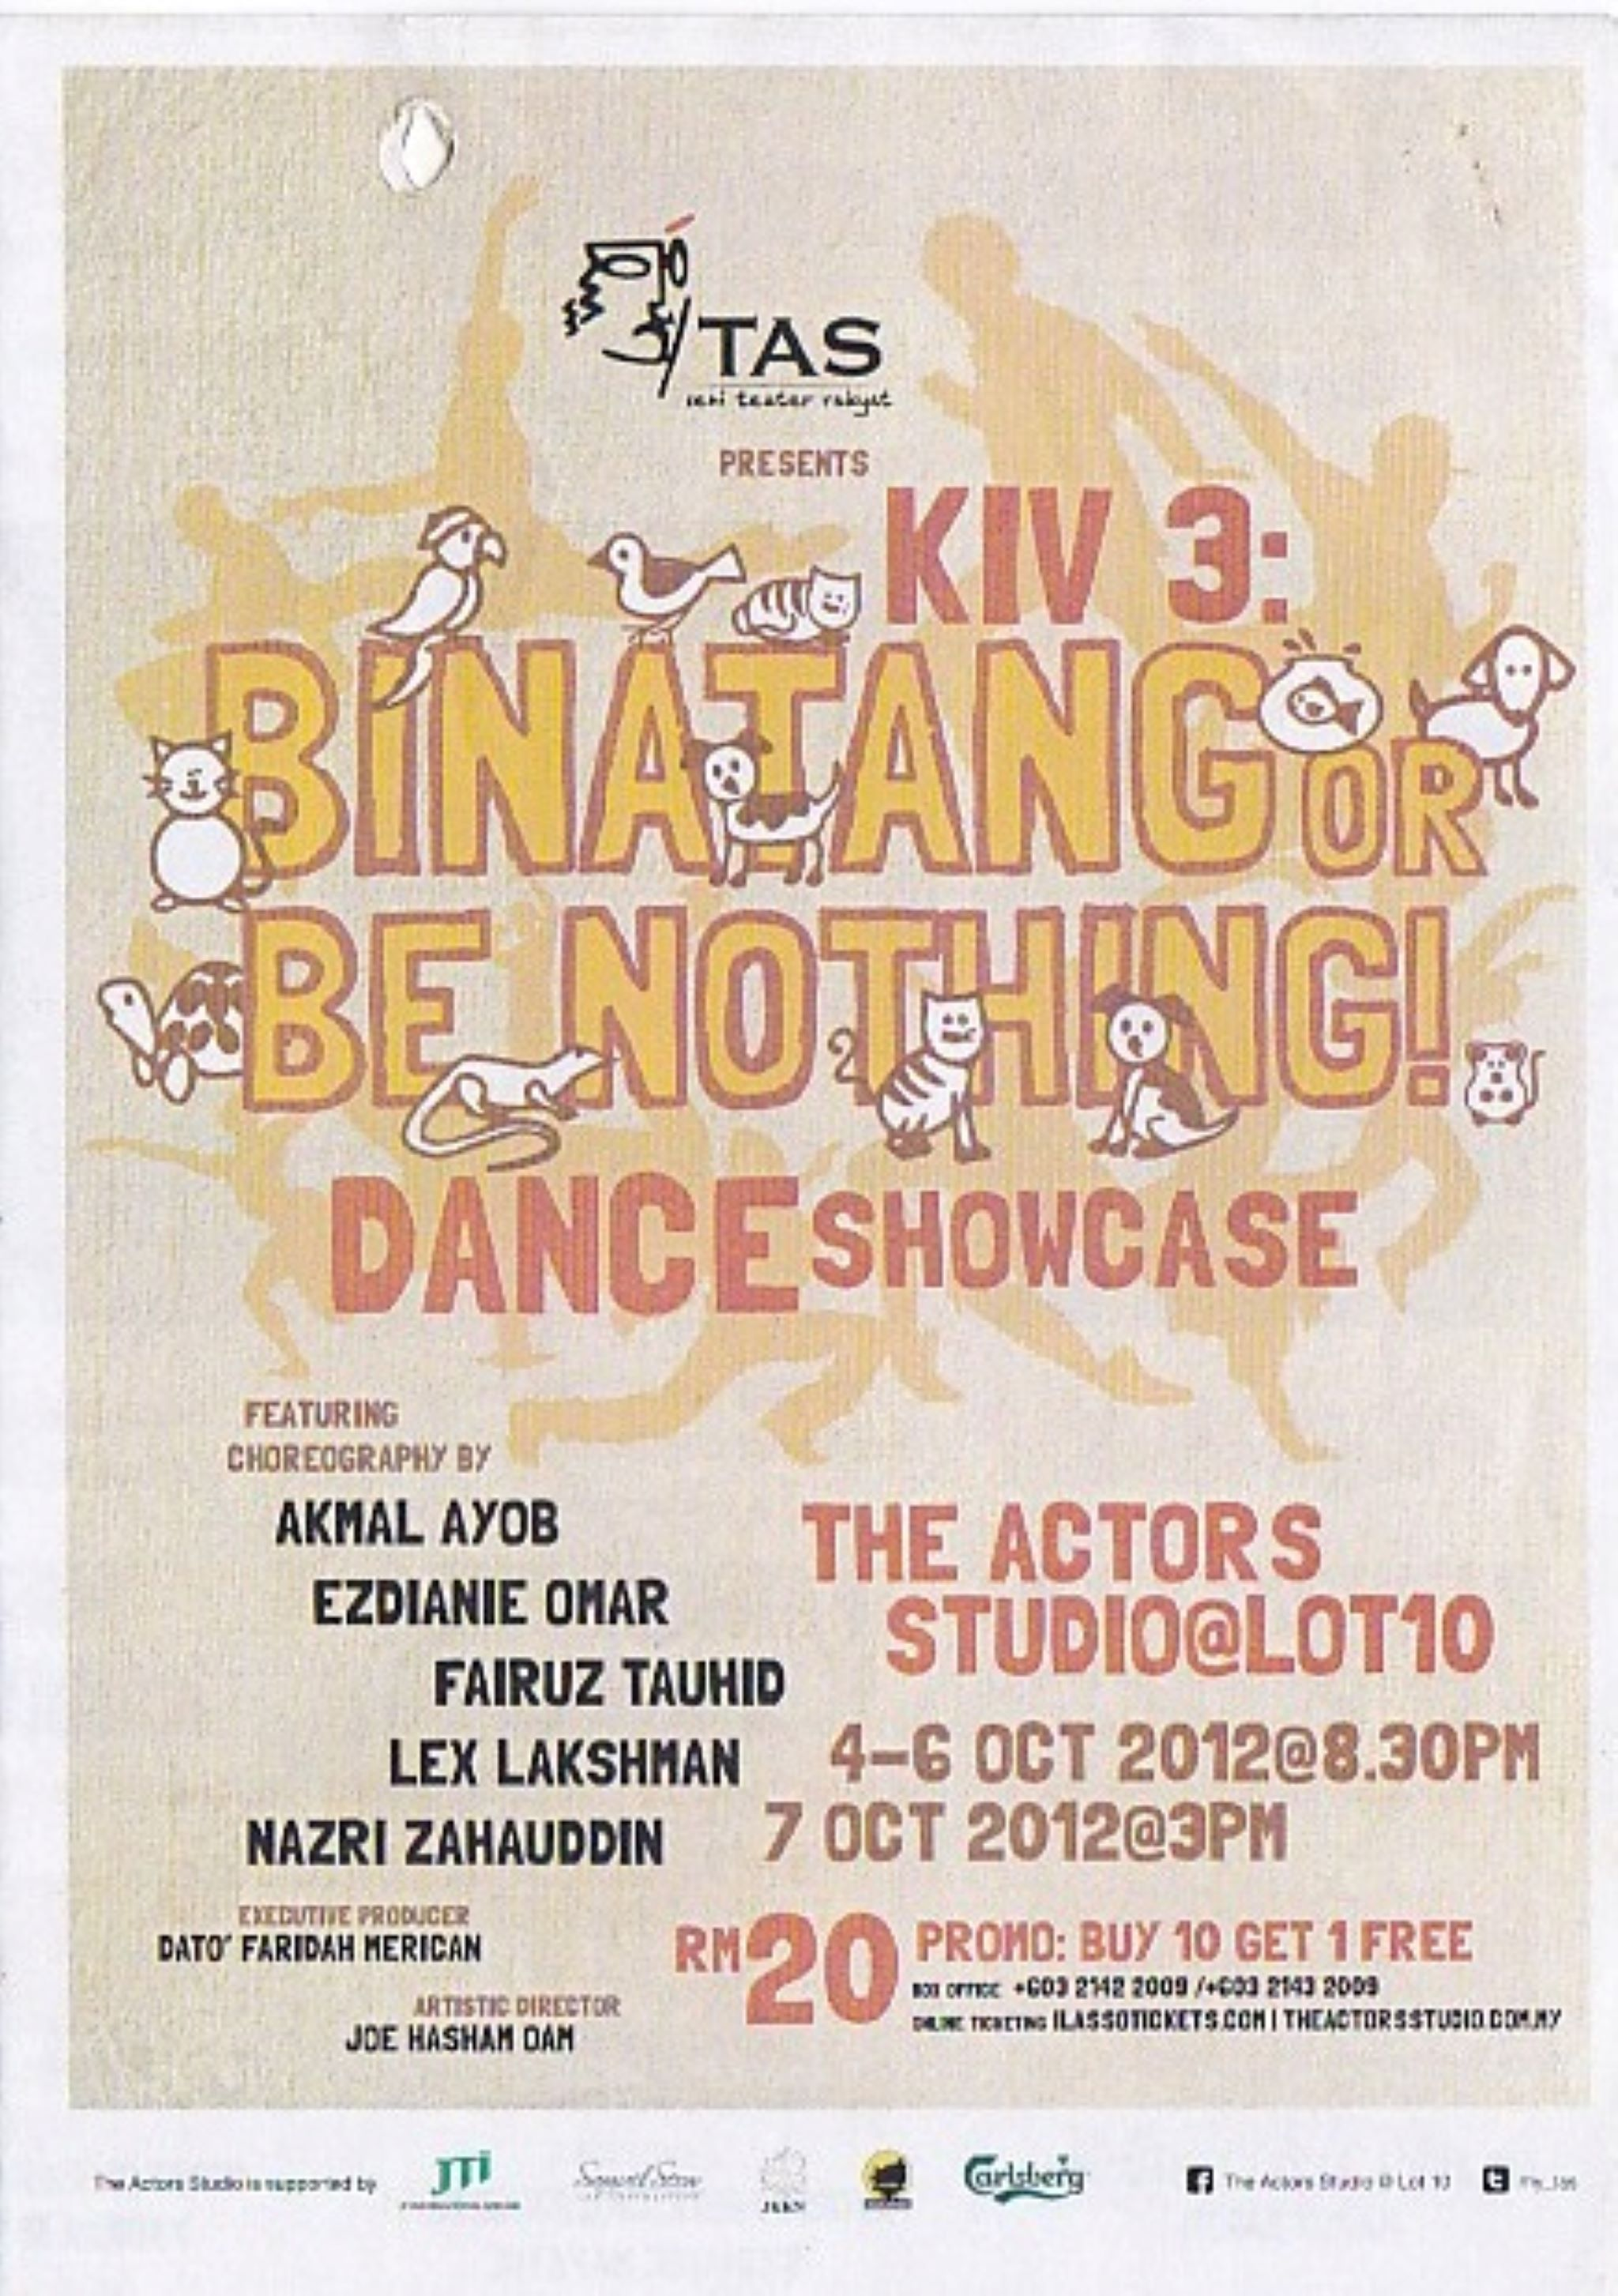 2012 KIV 3: Binatang or be nothing Cover